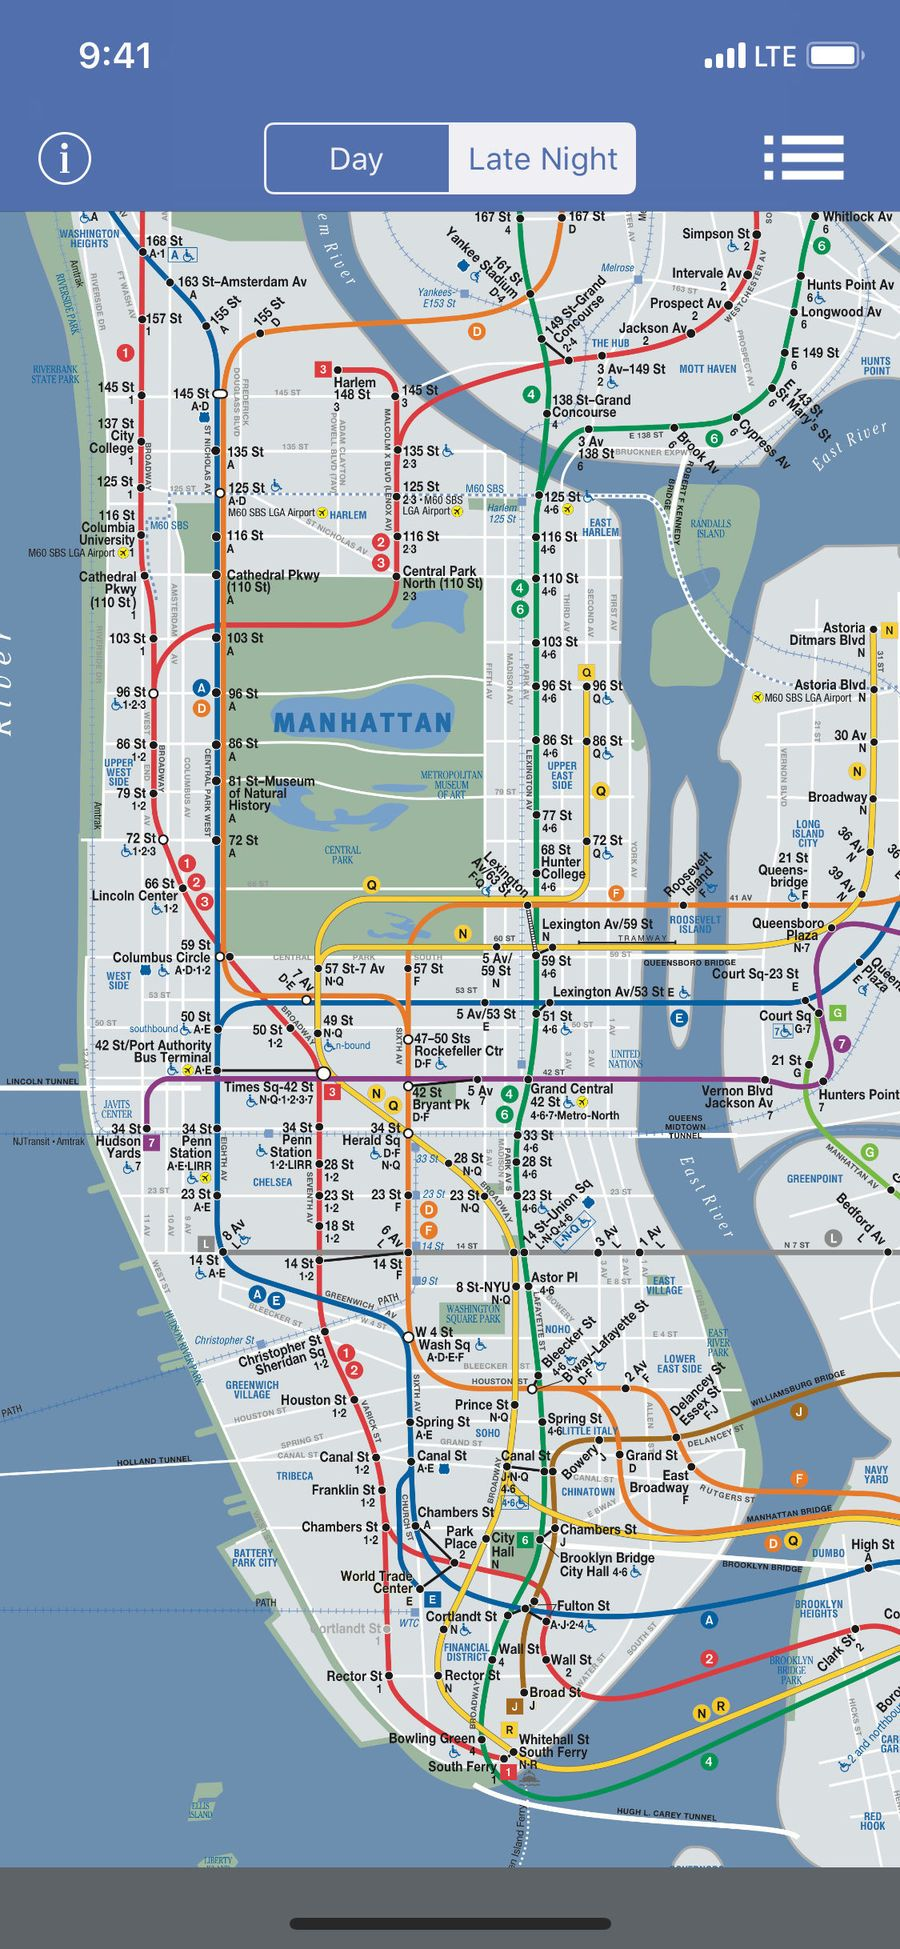 New York City Navigating Subway Map.New York Subway Map Offline Navigation Dimayuga Ios Travel Apple